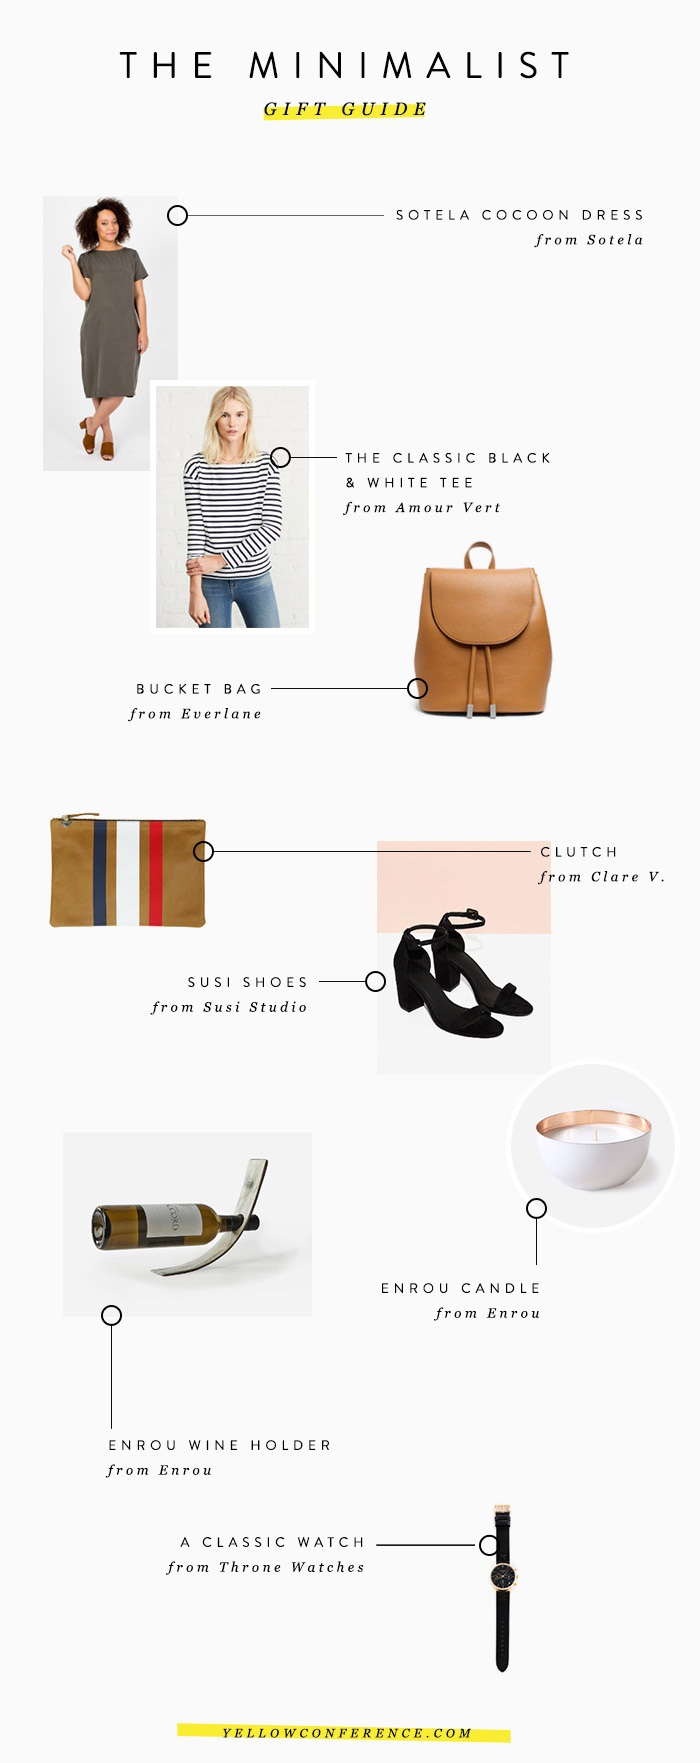 gift-guide-minimalist